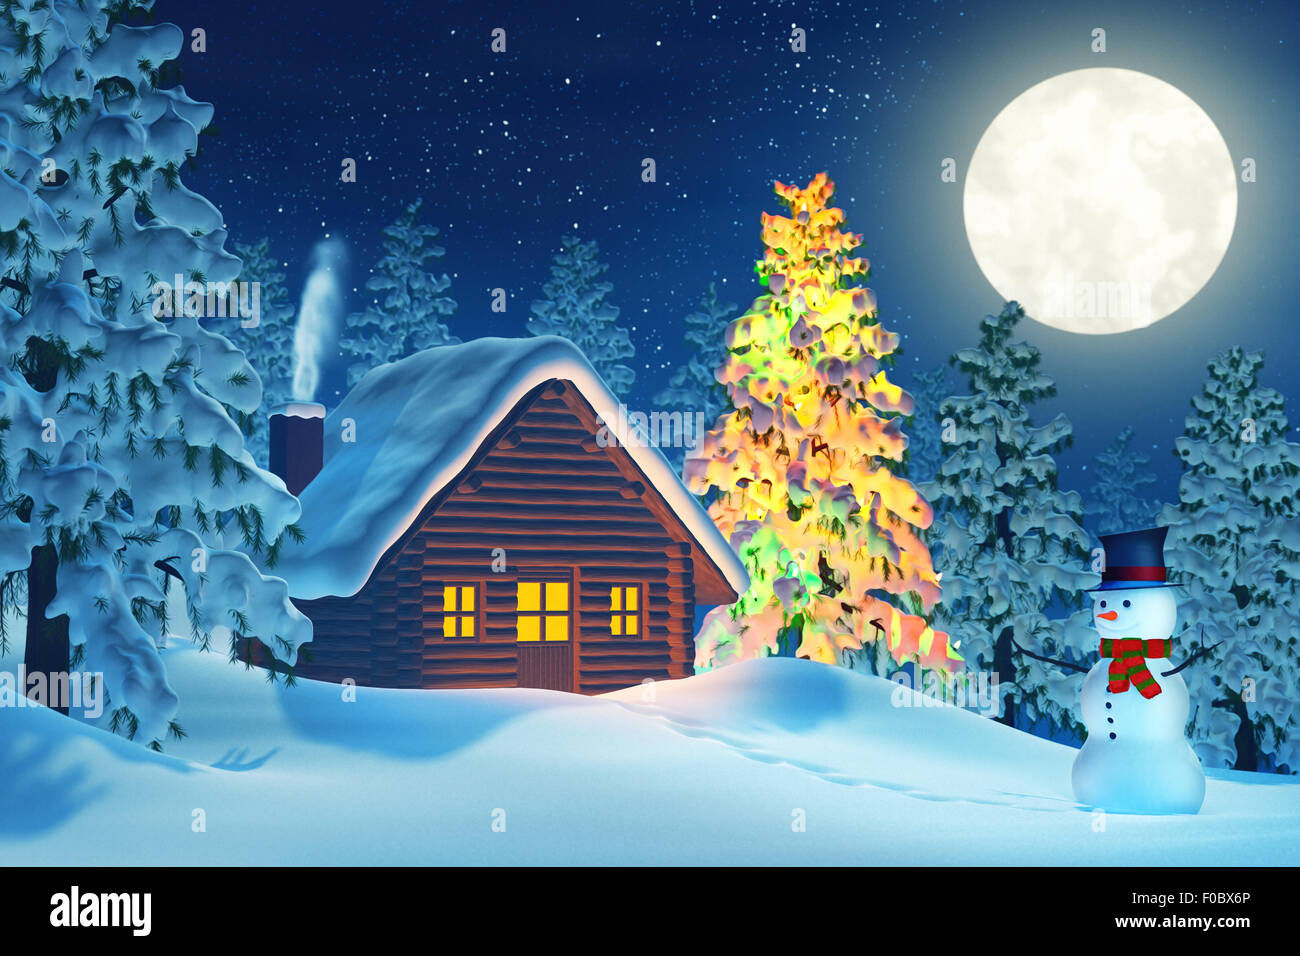 A cabin in a moonlit snowy Christmas landscape at night. The trees ...